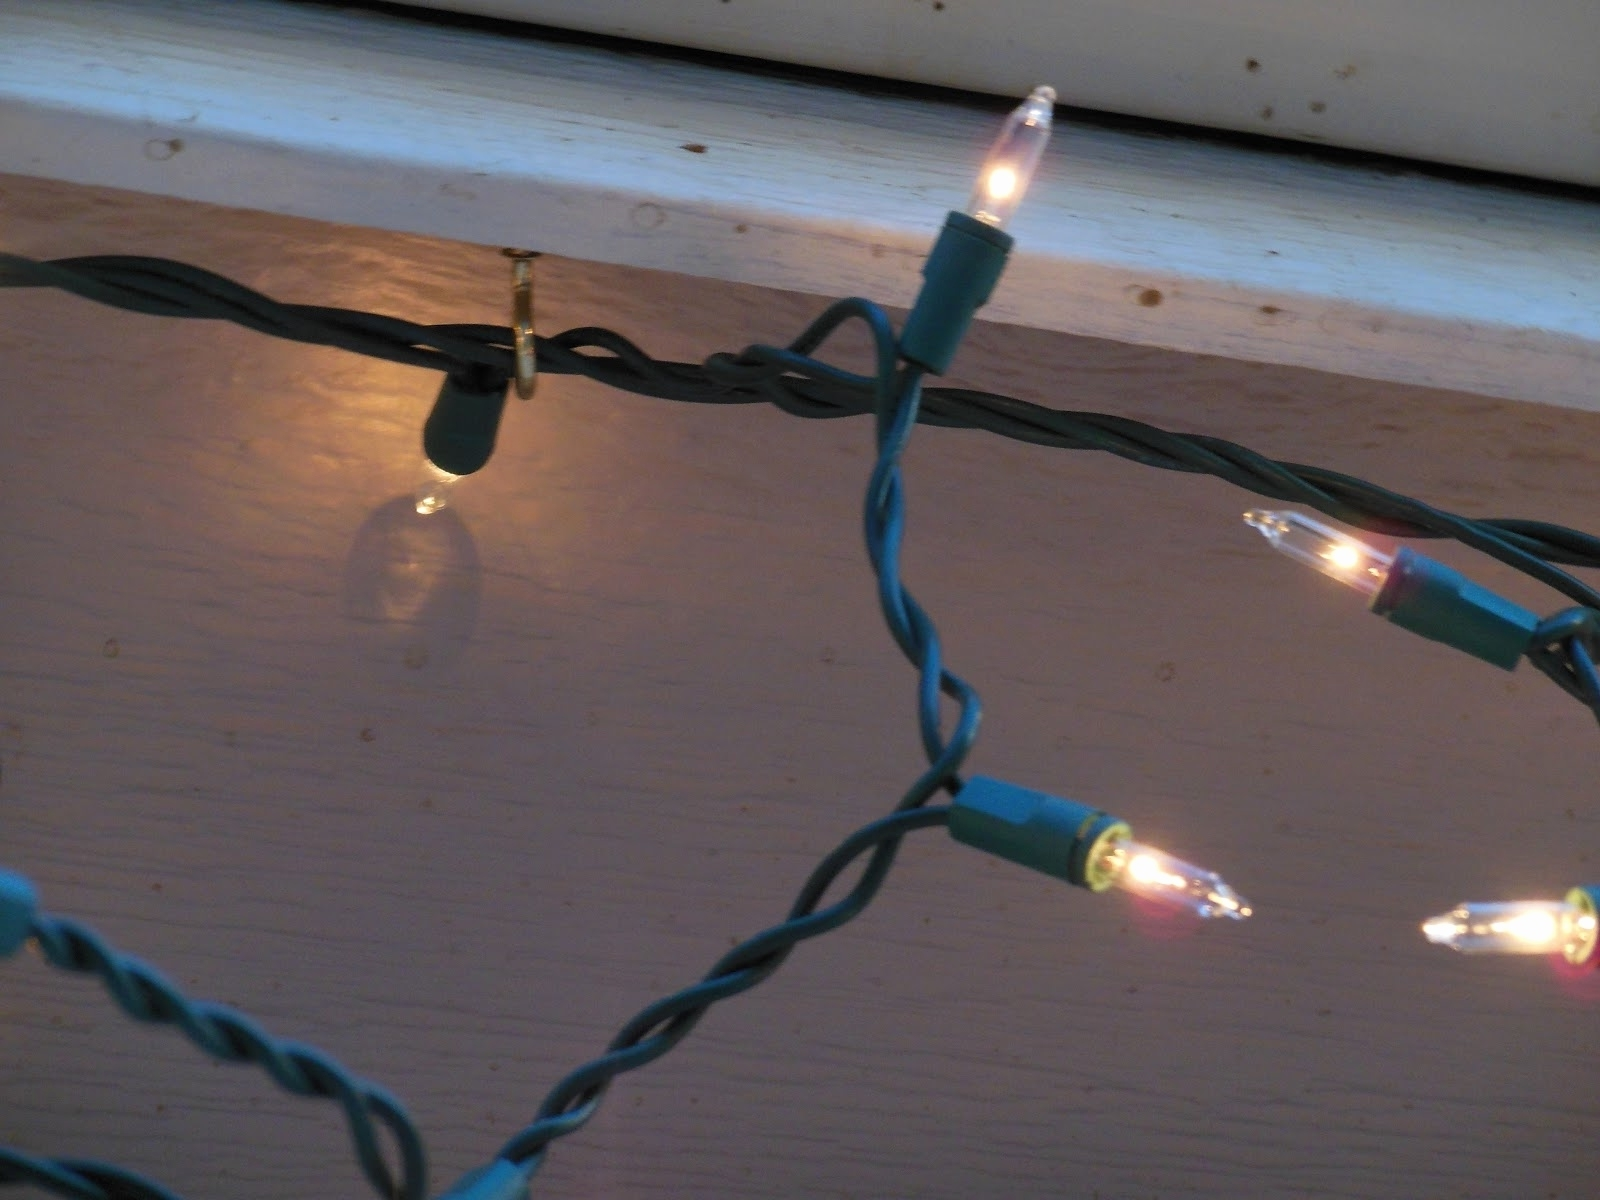 Famous Best Of How To Hang Outdoor Christmas Lights Images – Home Design Intended For Hanging Outdoor Christmas Lights Hooks (View 4 of 20)